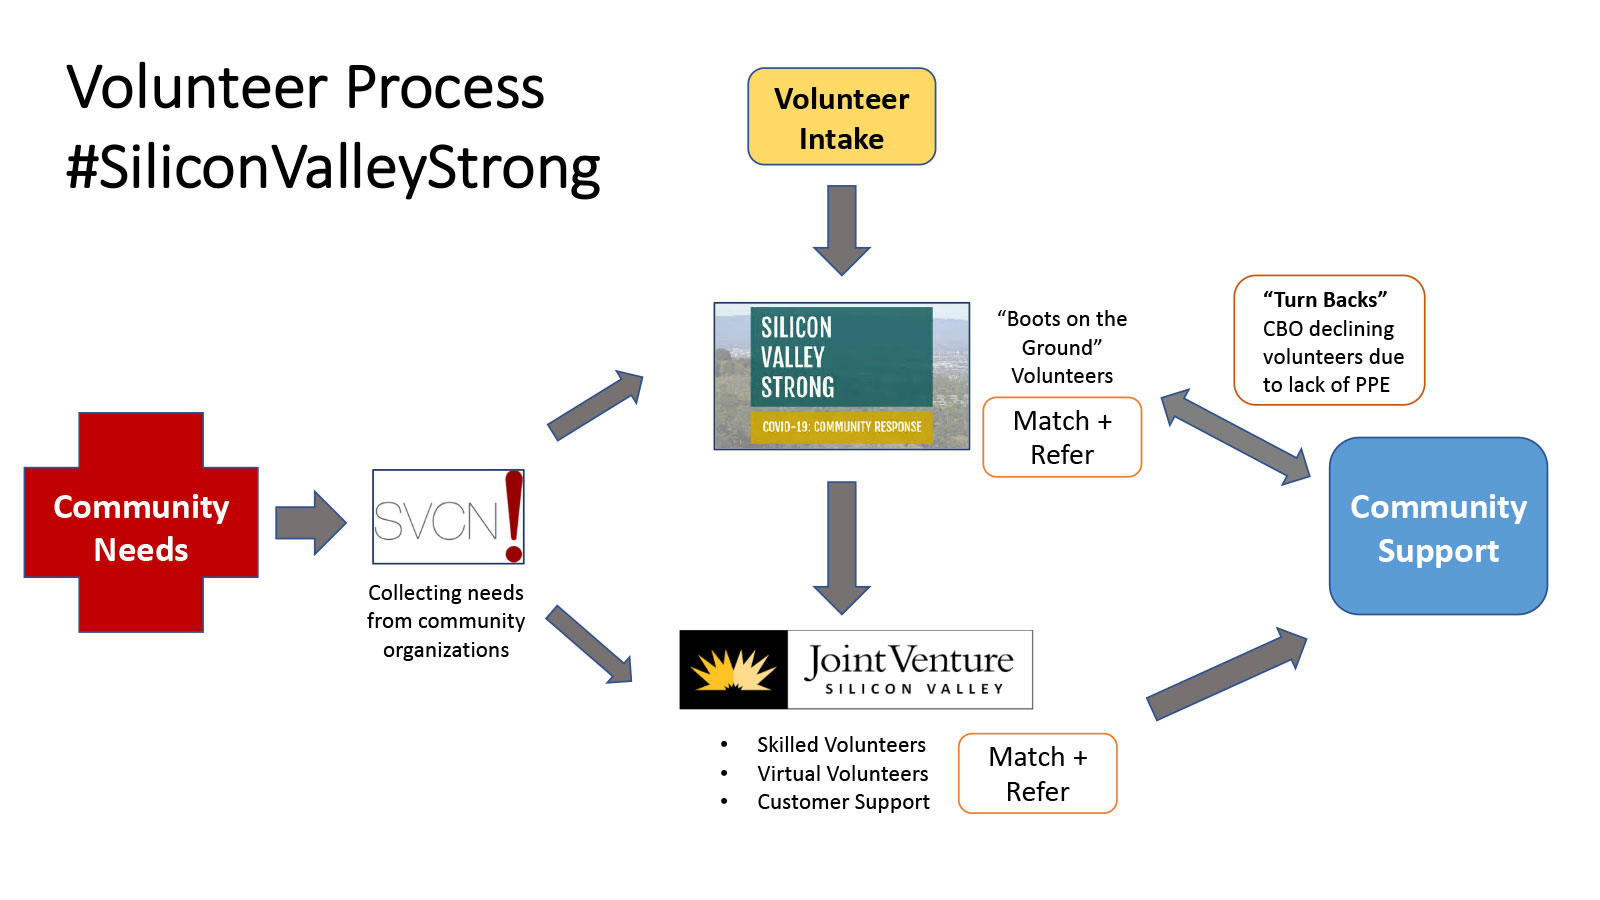 Volunteer Process flow chart